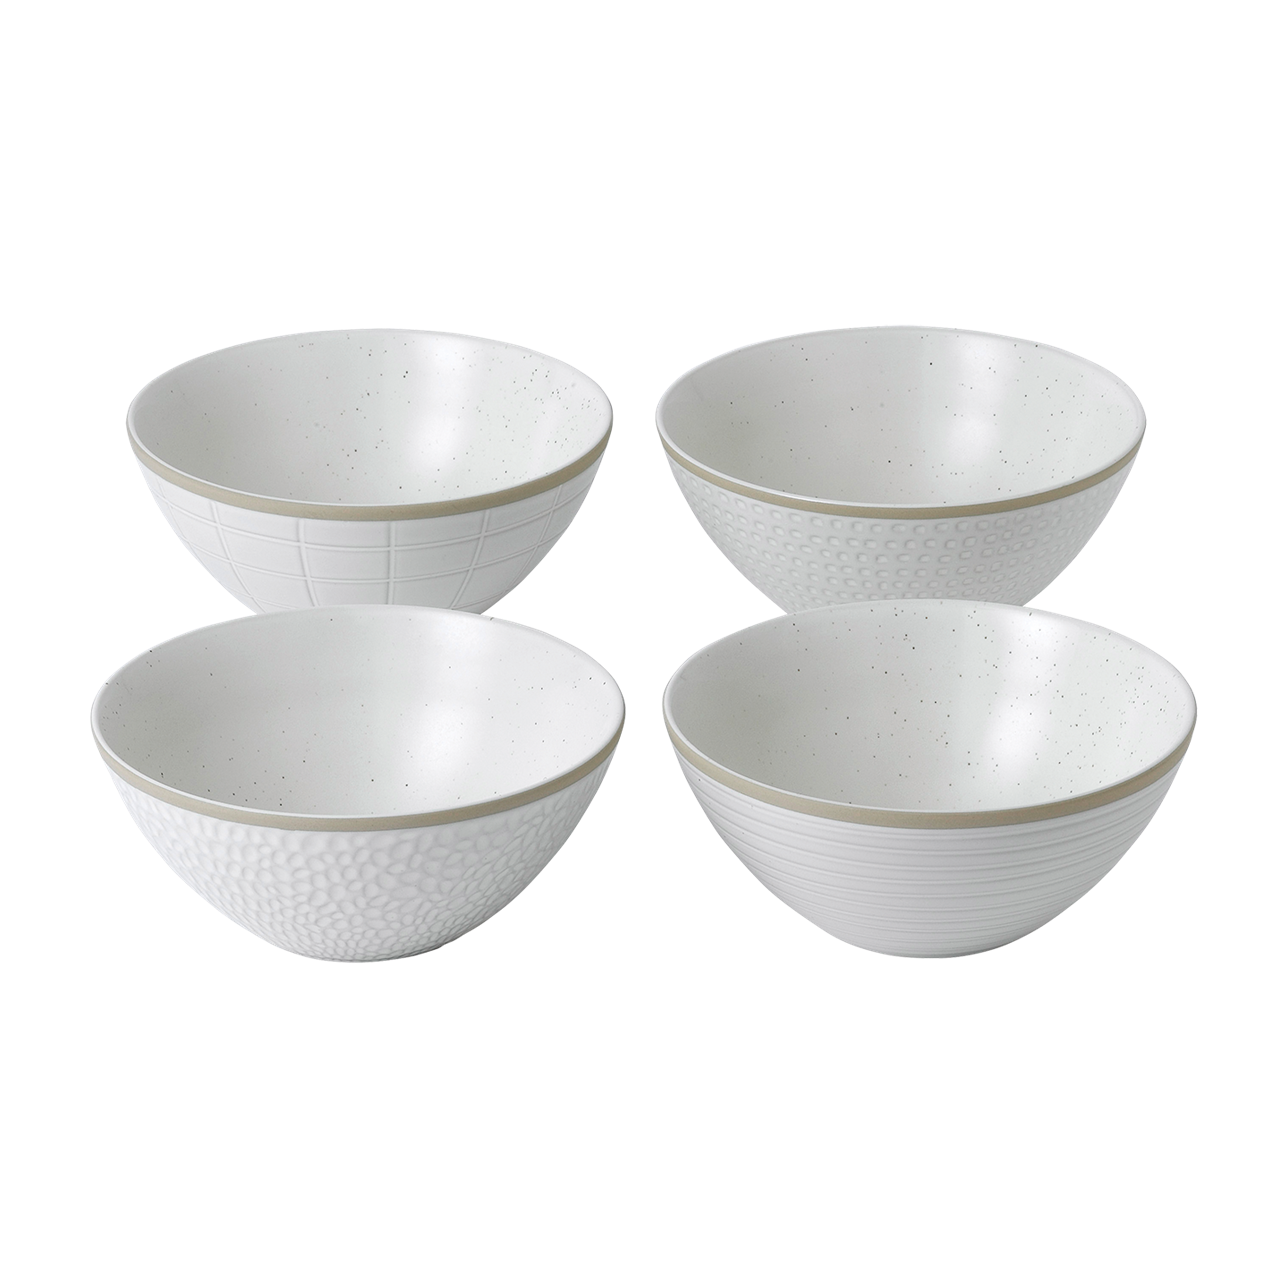 Maze Grill Mixed Pattern White Cereal Bowls